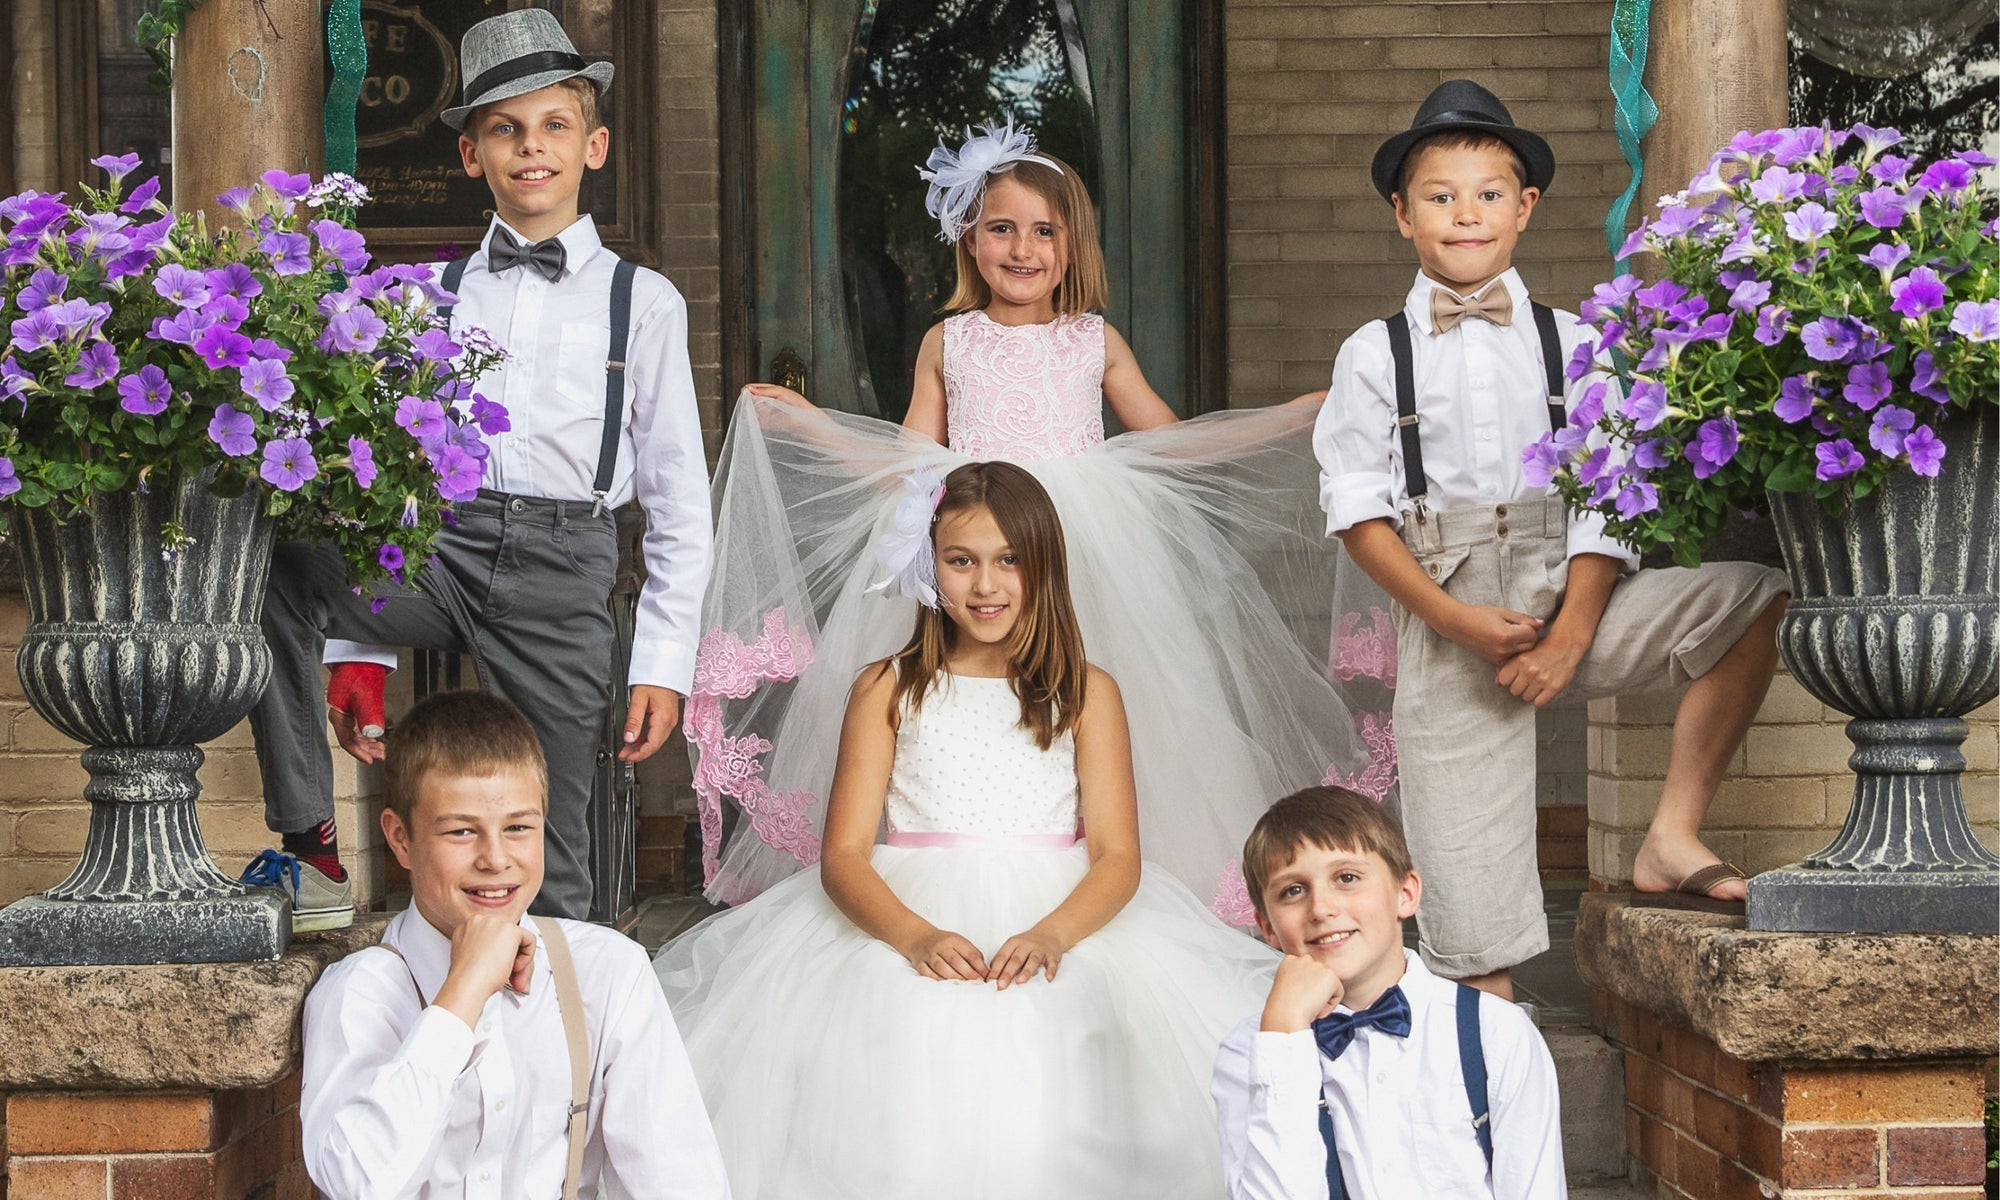 Ring Bearer 101: How to Pick One and their Duties